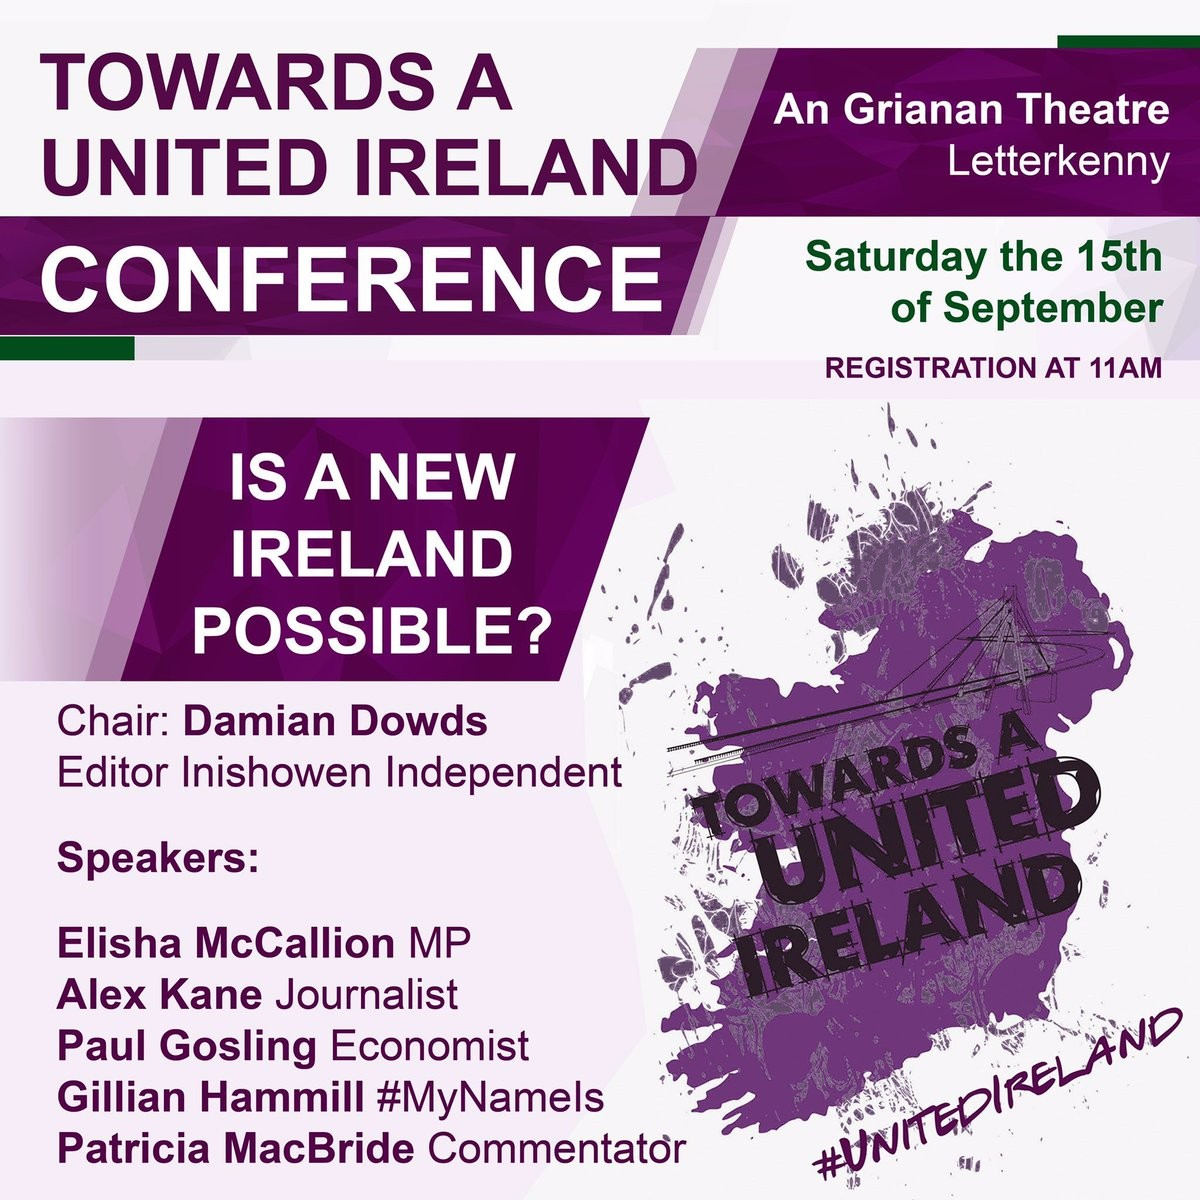 Poster to United Ireland conference.